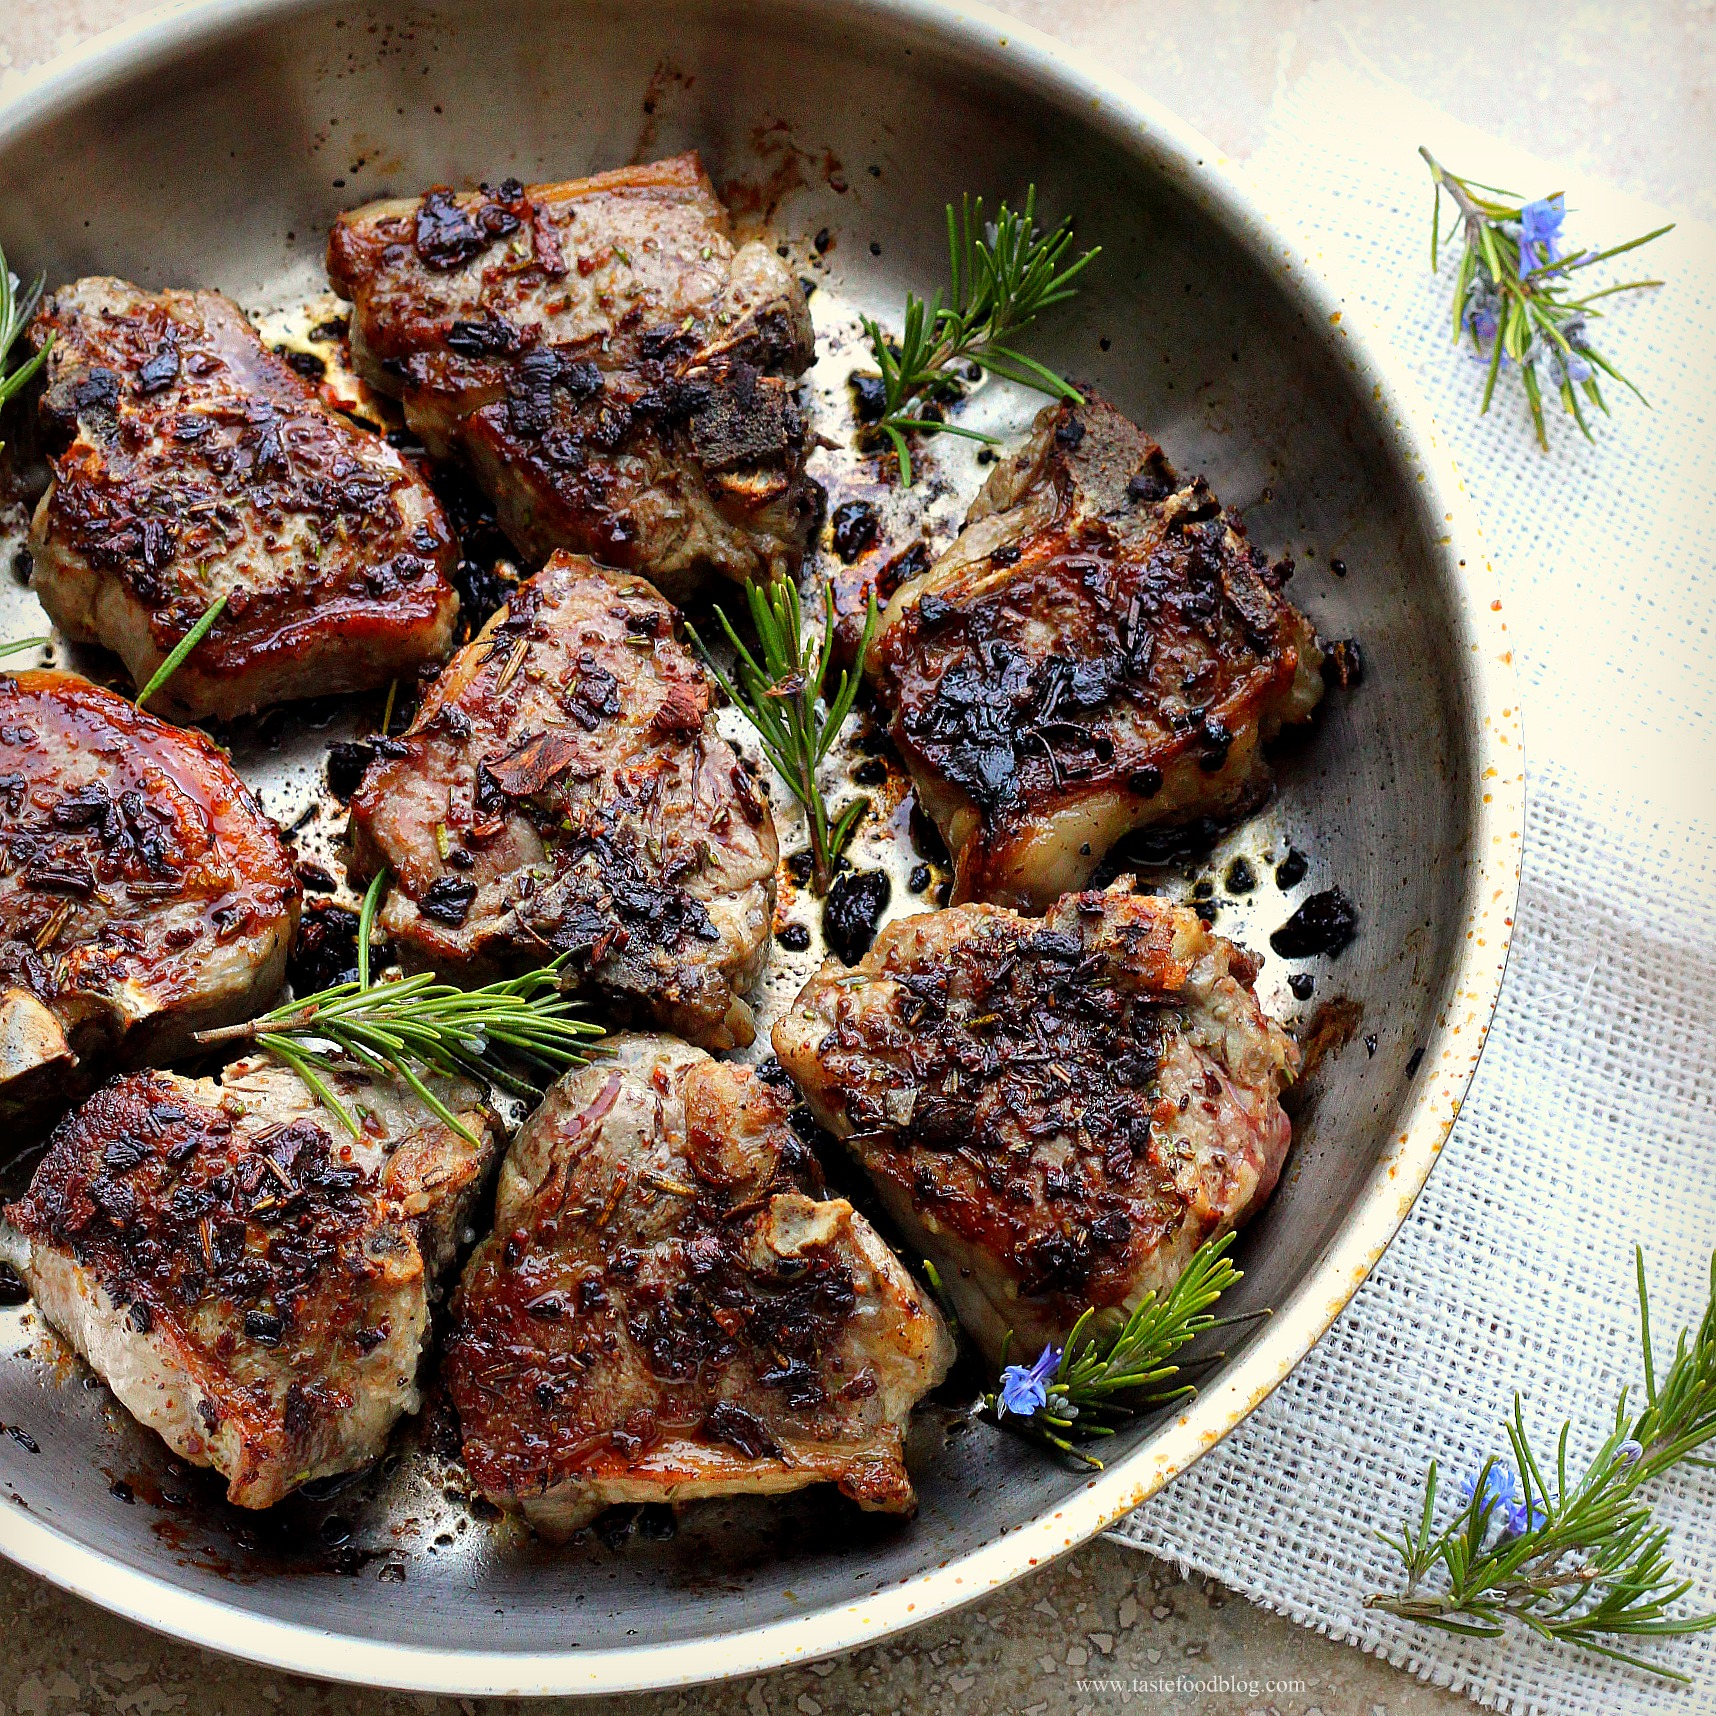 Rosemary and Porcini Crusted Lamb Loin Chops